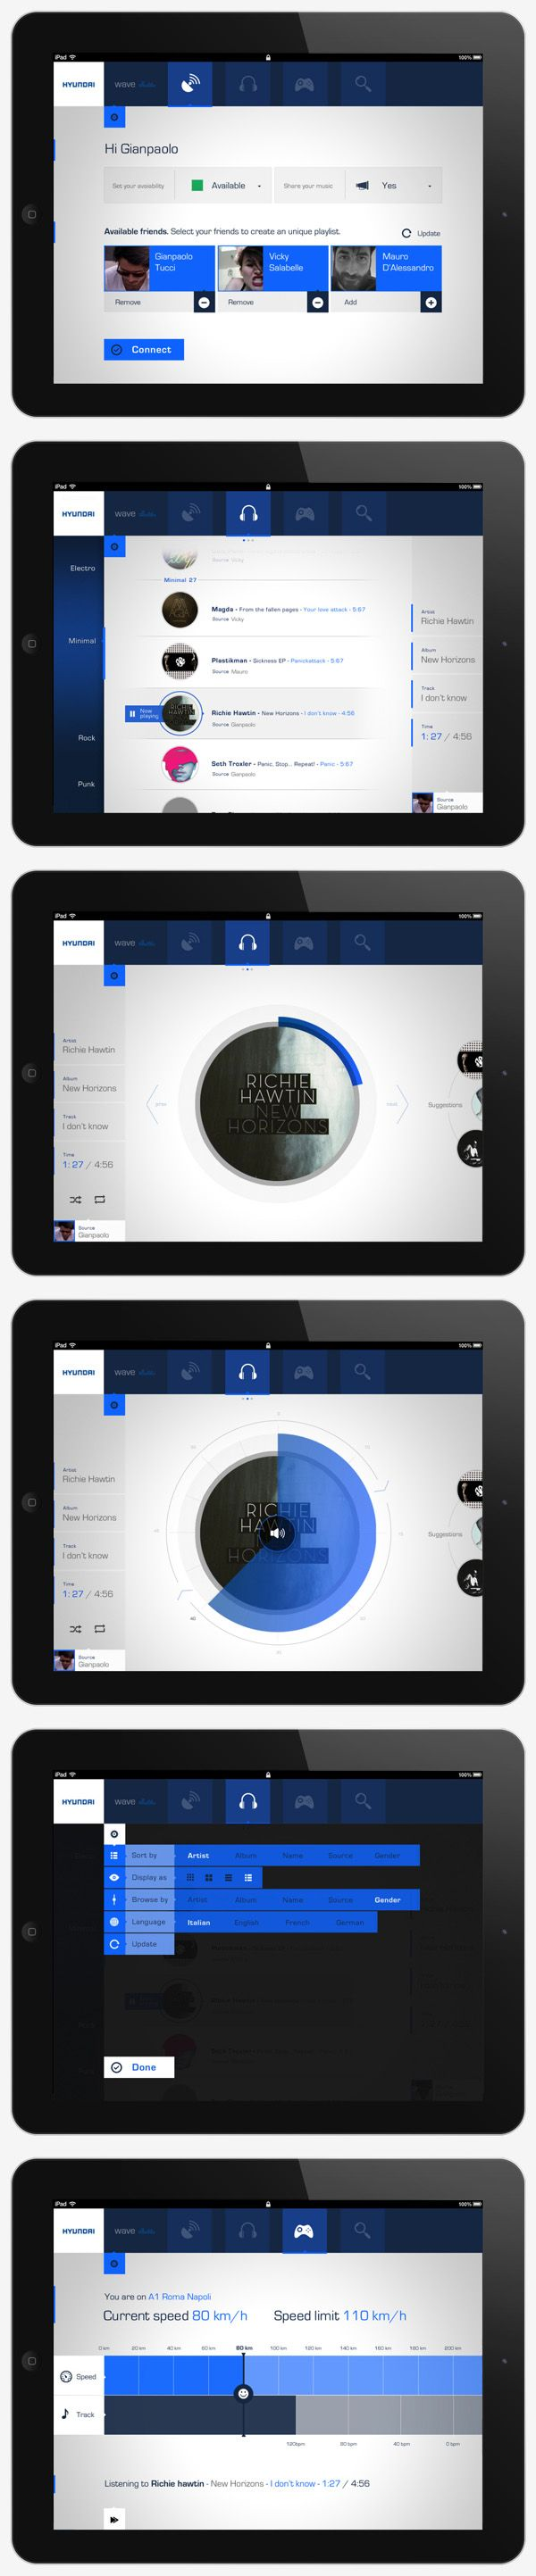 iPad application by Gianpaolo Tucci, via Behance #UI